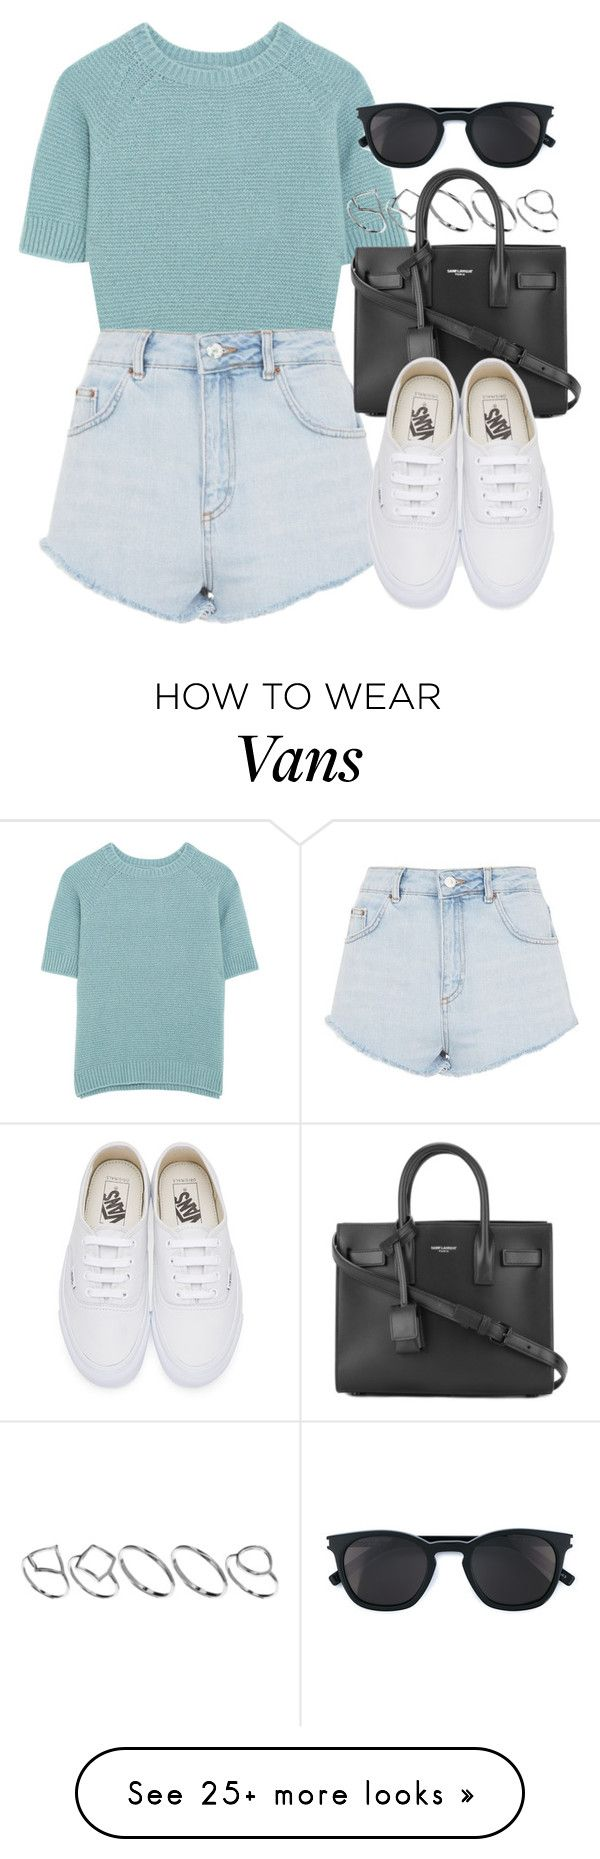 """Sin título #12727"" by vany-alvarado on Polyvore featuring MaxMara, Topshop, ASOS, Yves Saint Laurent and Vans"